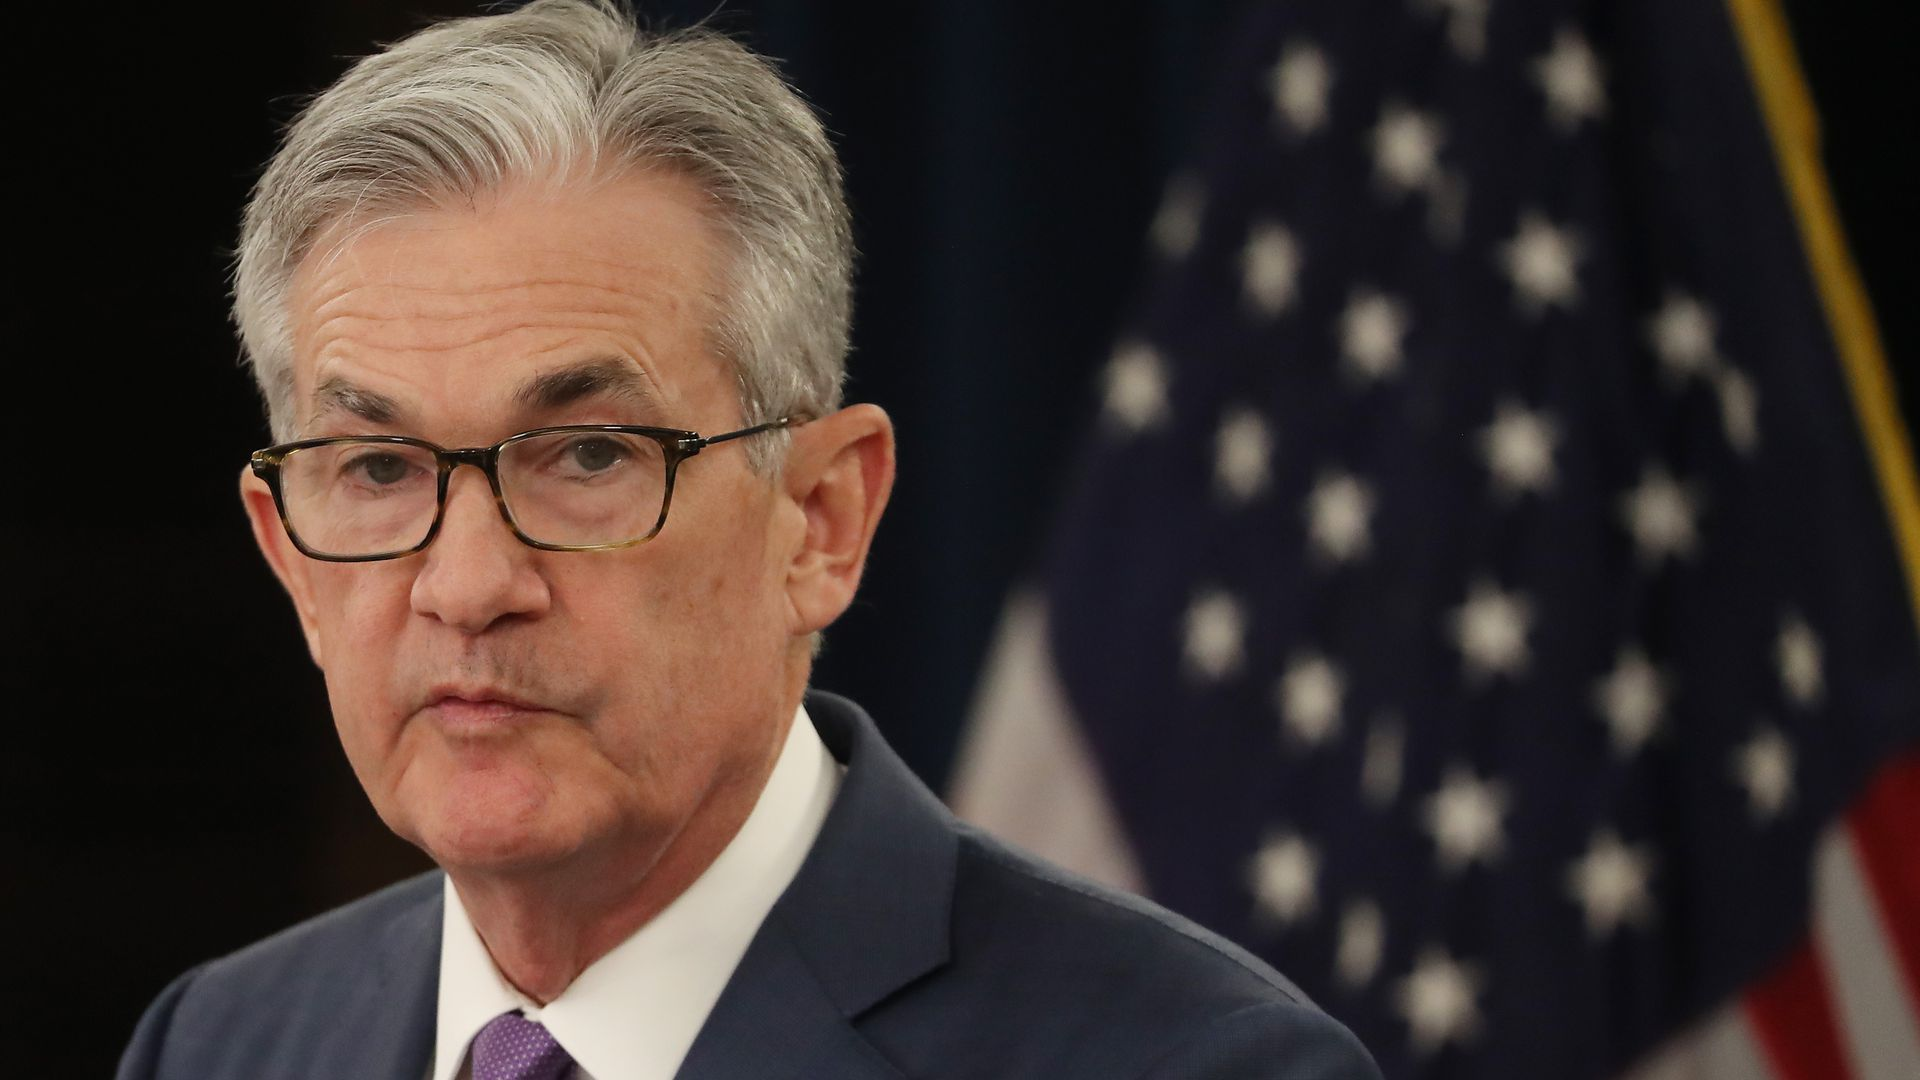 Federal Reserve Board Chairman Jerome Powell speaks during a news conference in July